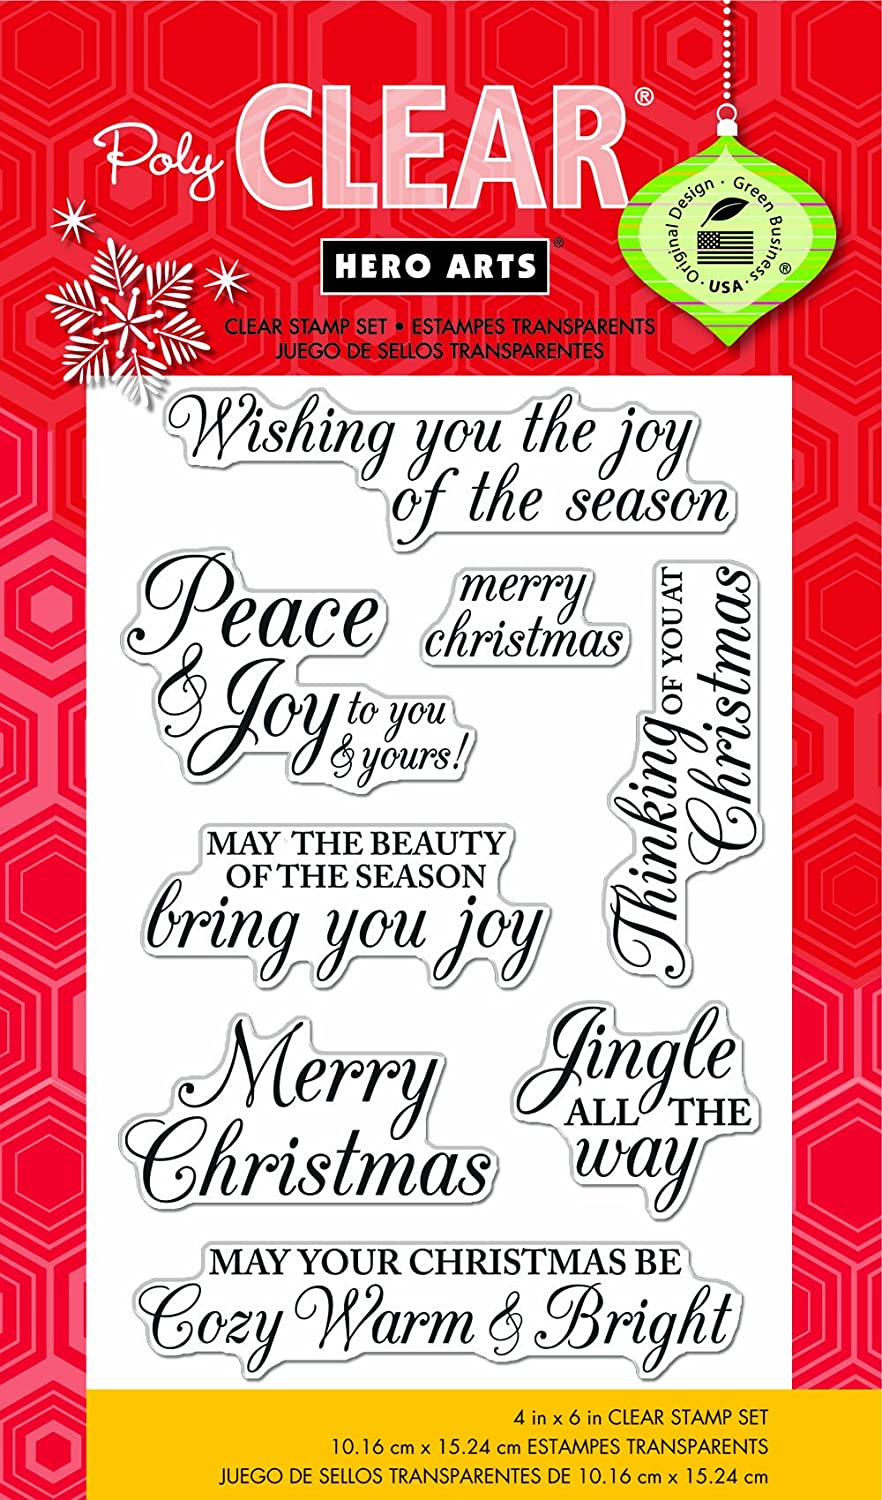 Hero Arts Merry Christmas Message Tampons Transparents CL722